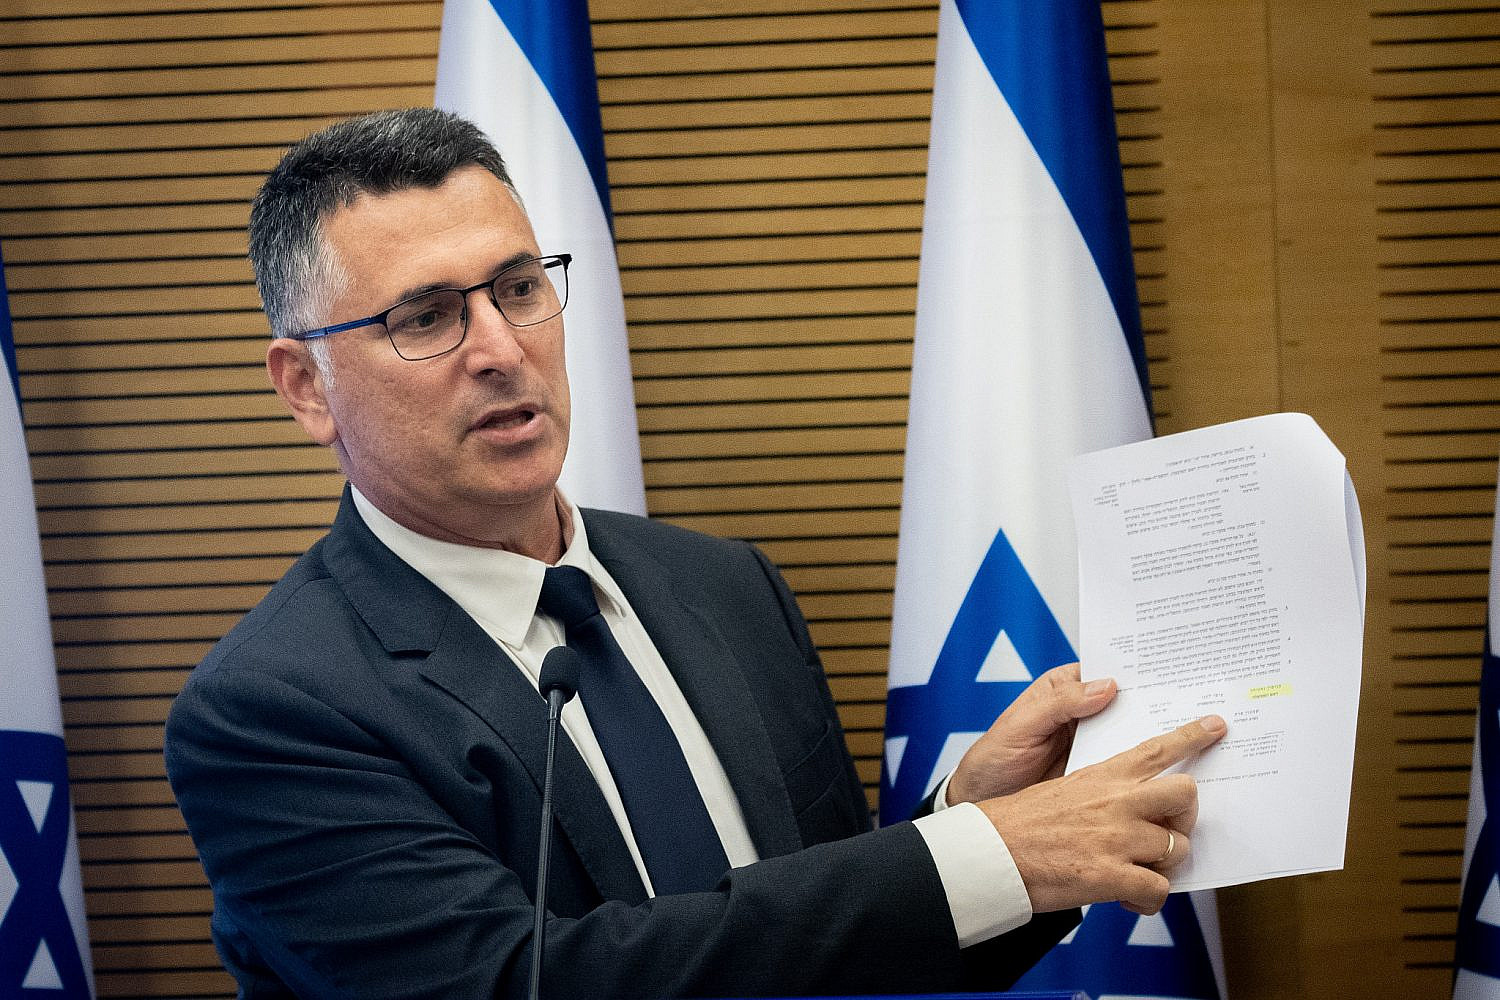 Head of the New Hope party Gideon Saar leads a faction meeting at the Knesset in Jerusalem, July 26, 2021. (Yonatan Sindel/Flash90)